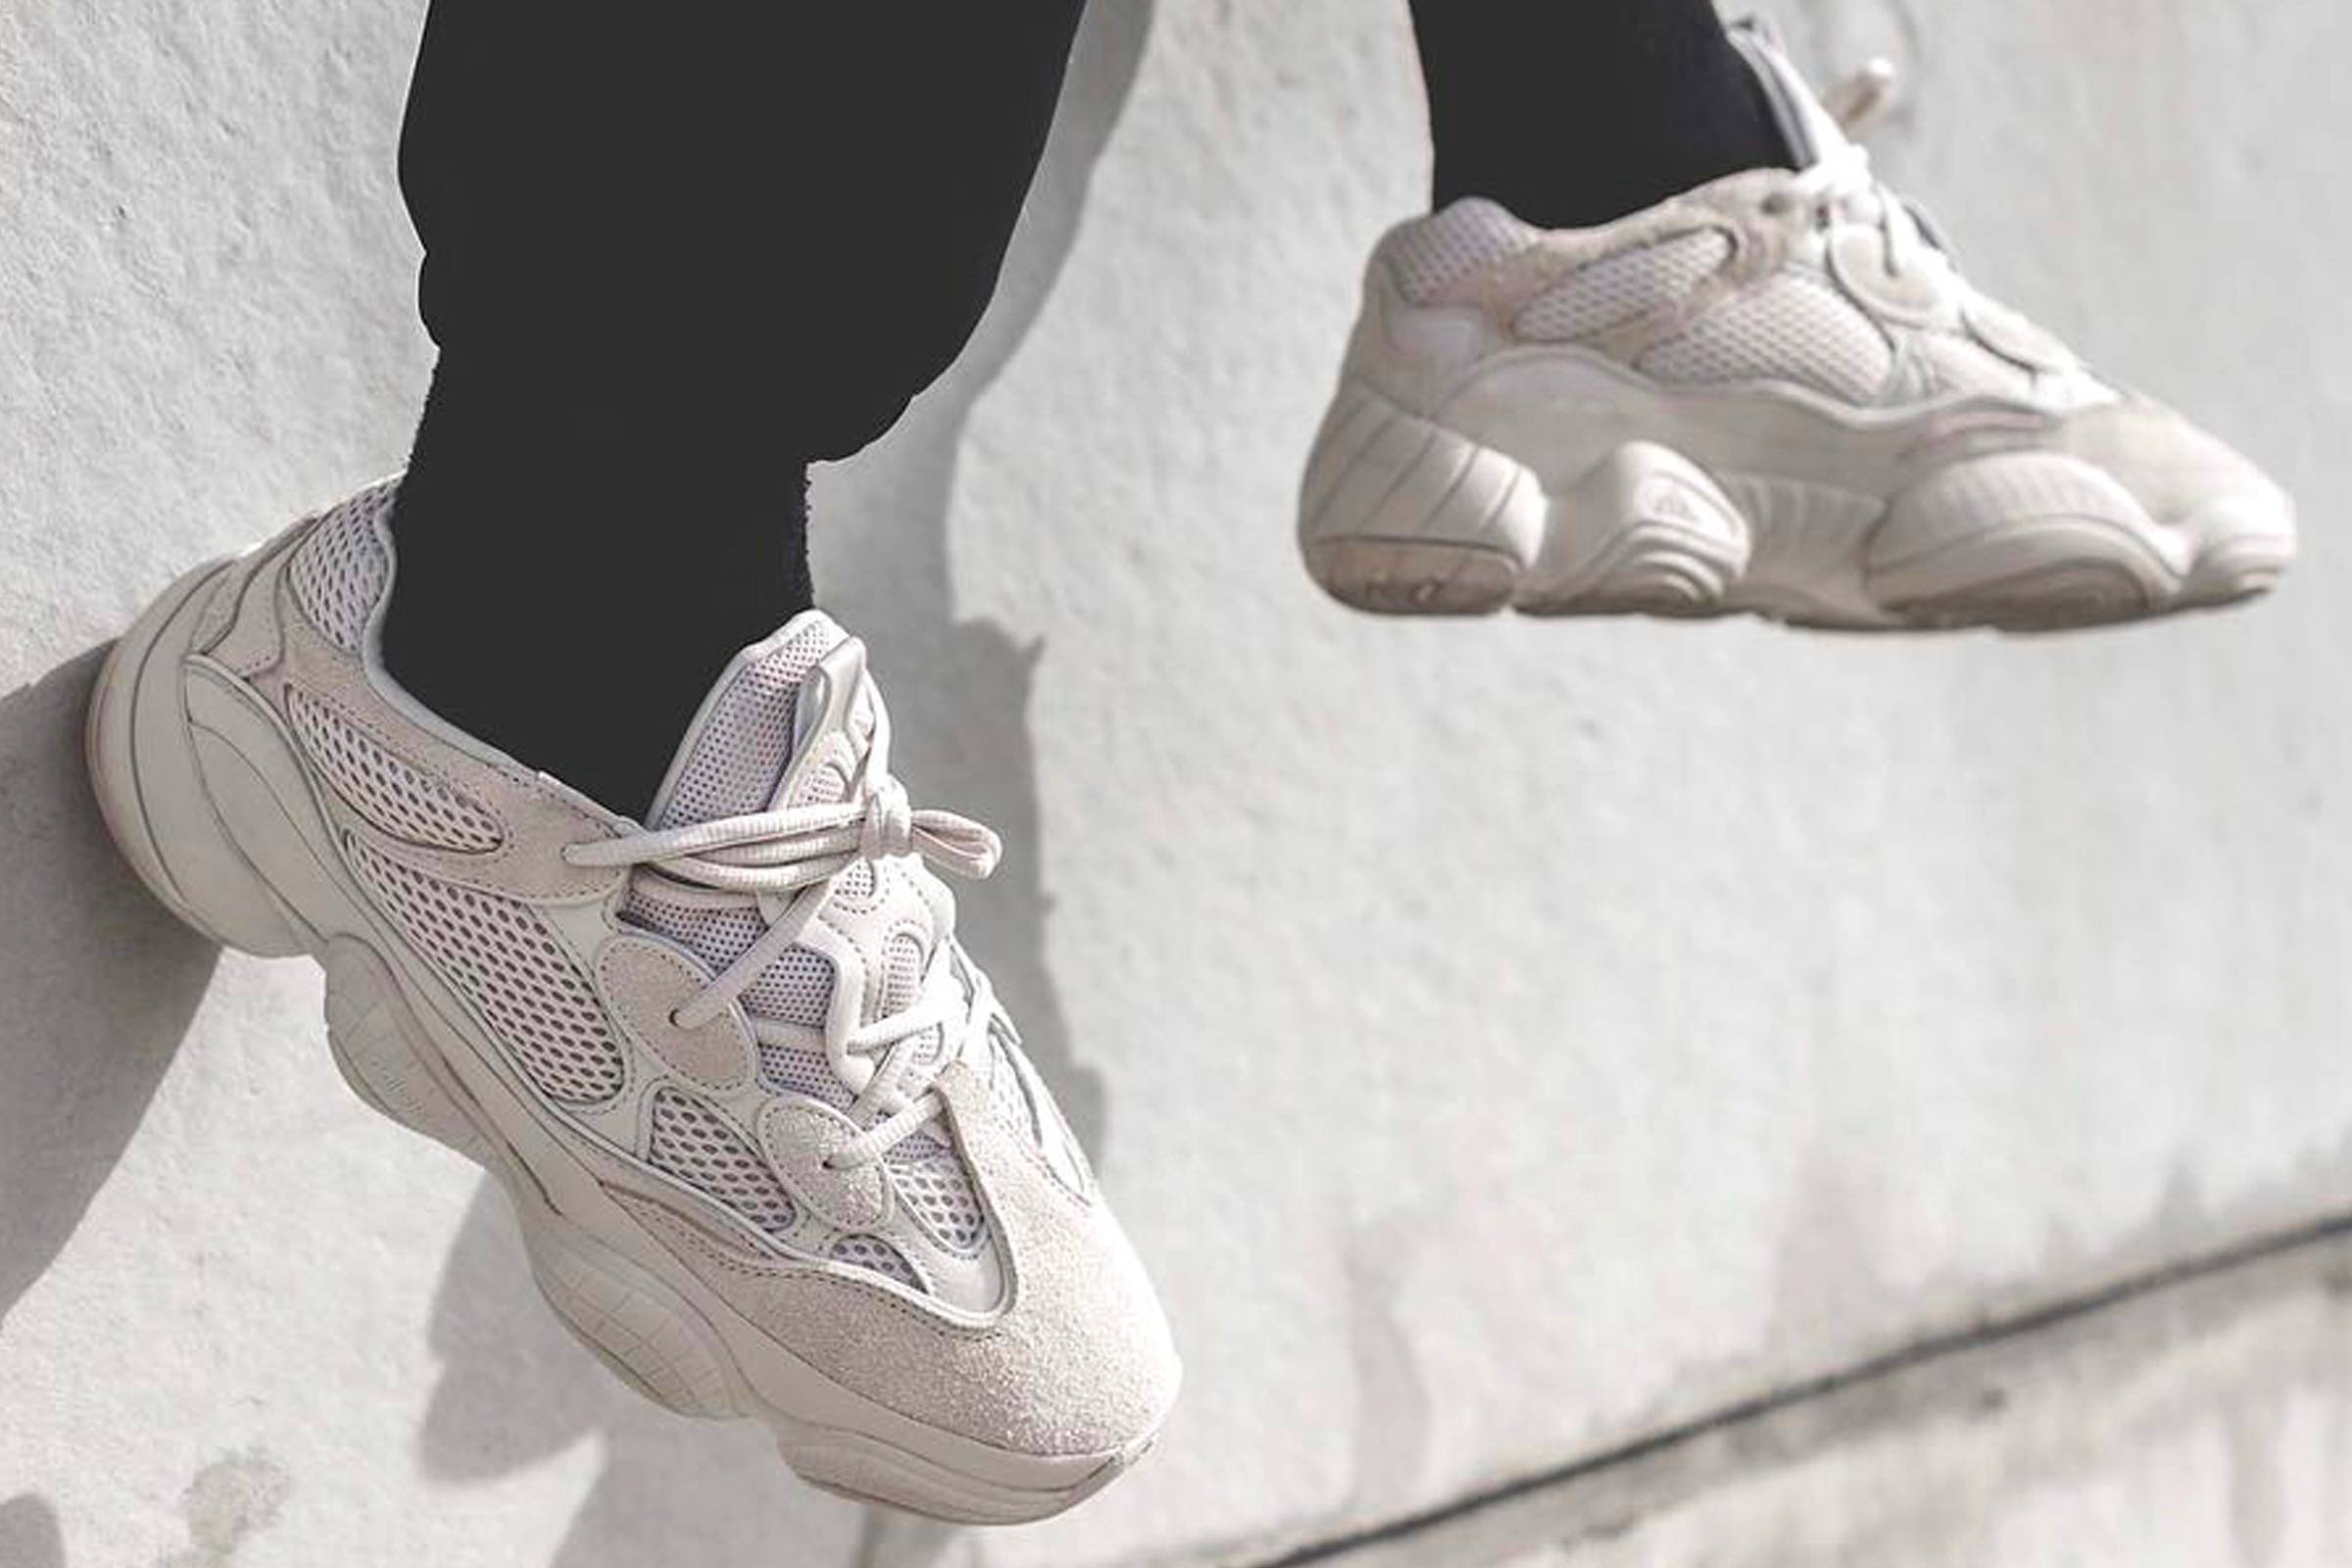 promo code fa108 150fb The Yeezy Desert Rat 500 Blush Drops This Weekend | Grailed